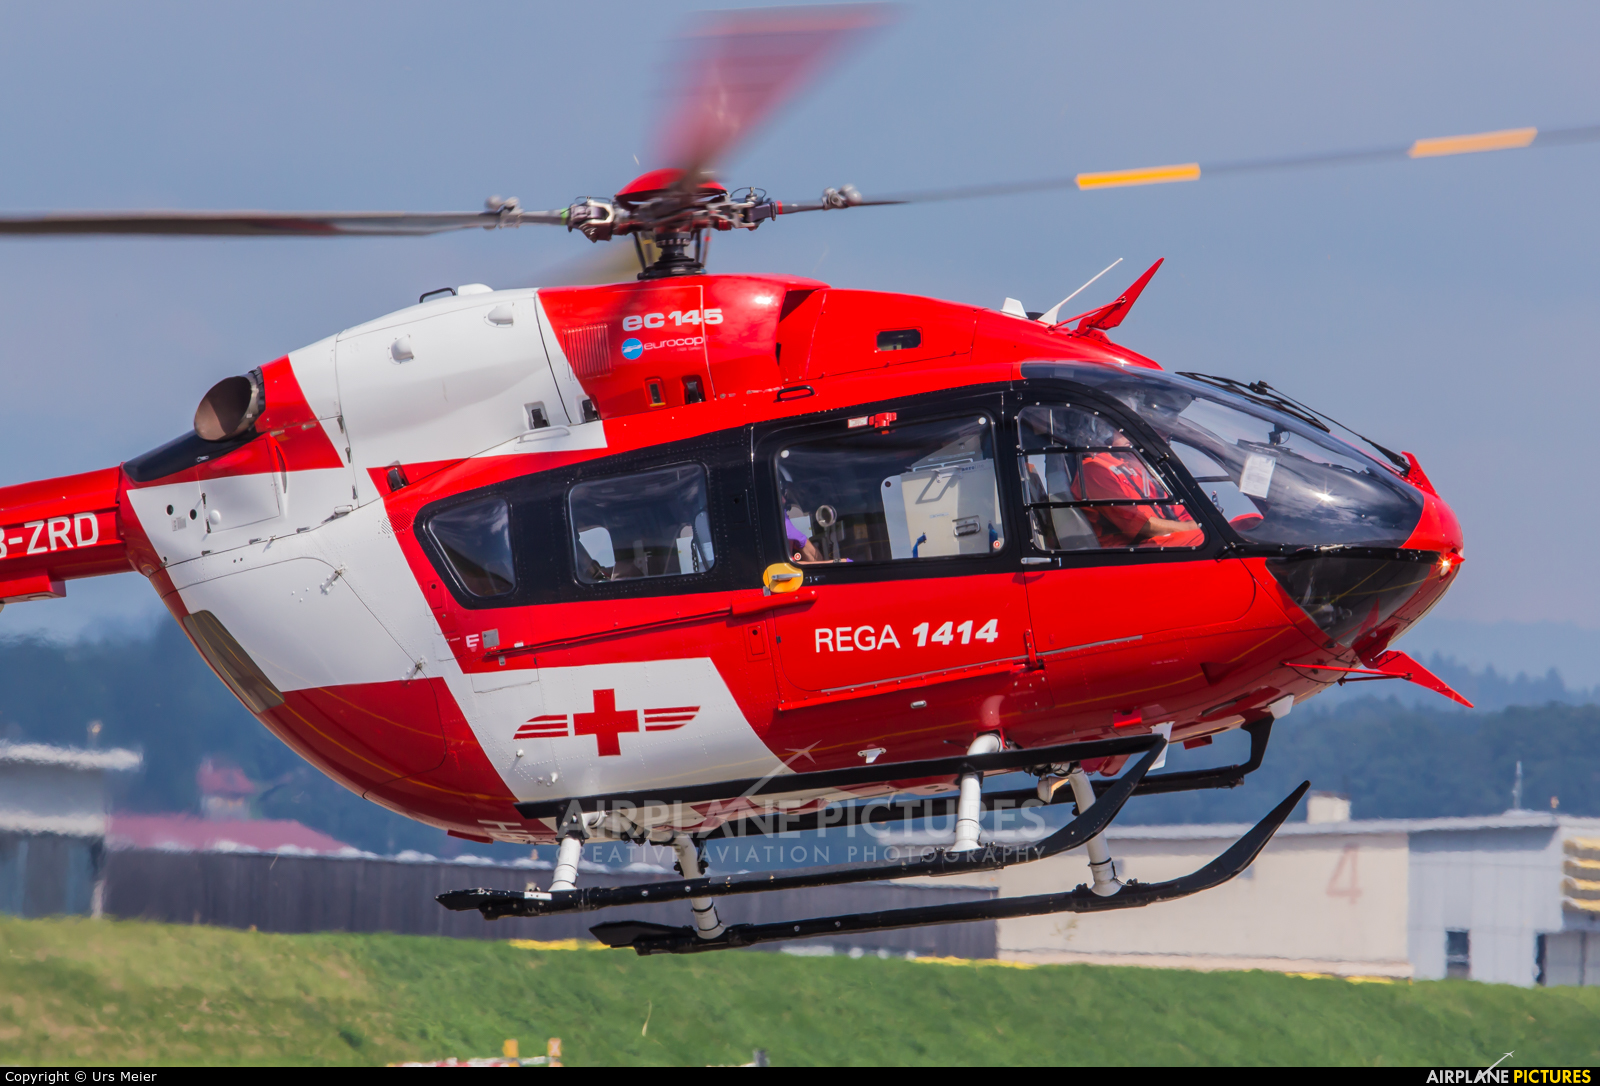 REGA Swiss Air Ambulance  HB-ZRD aircraft at Payerne